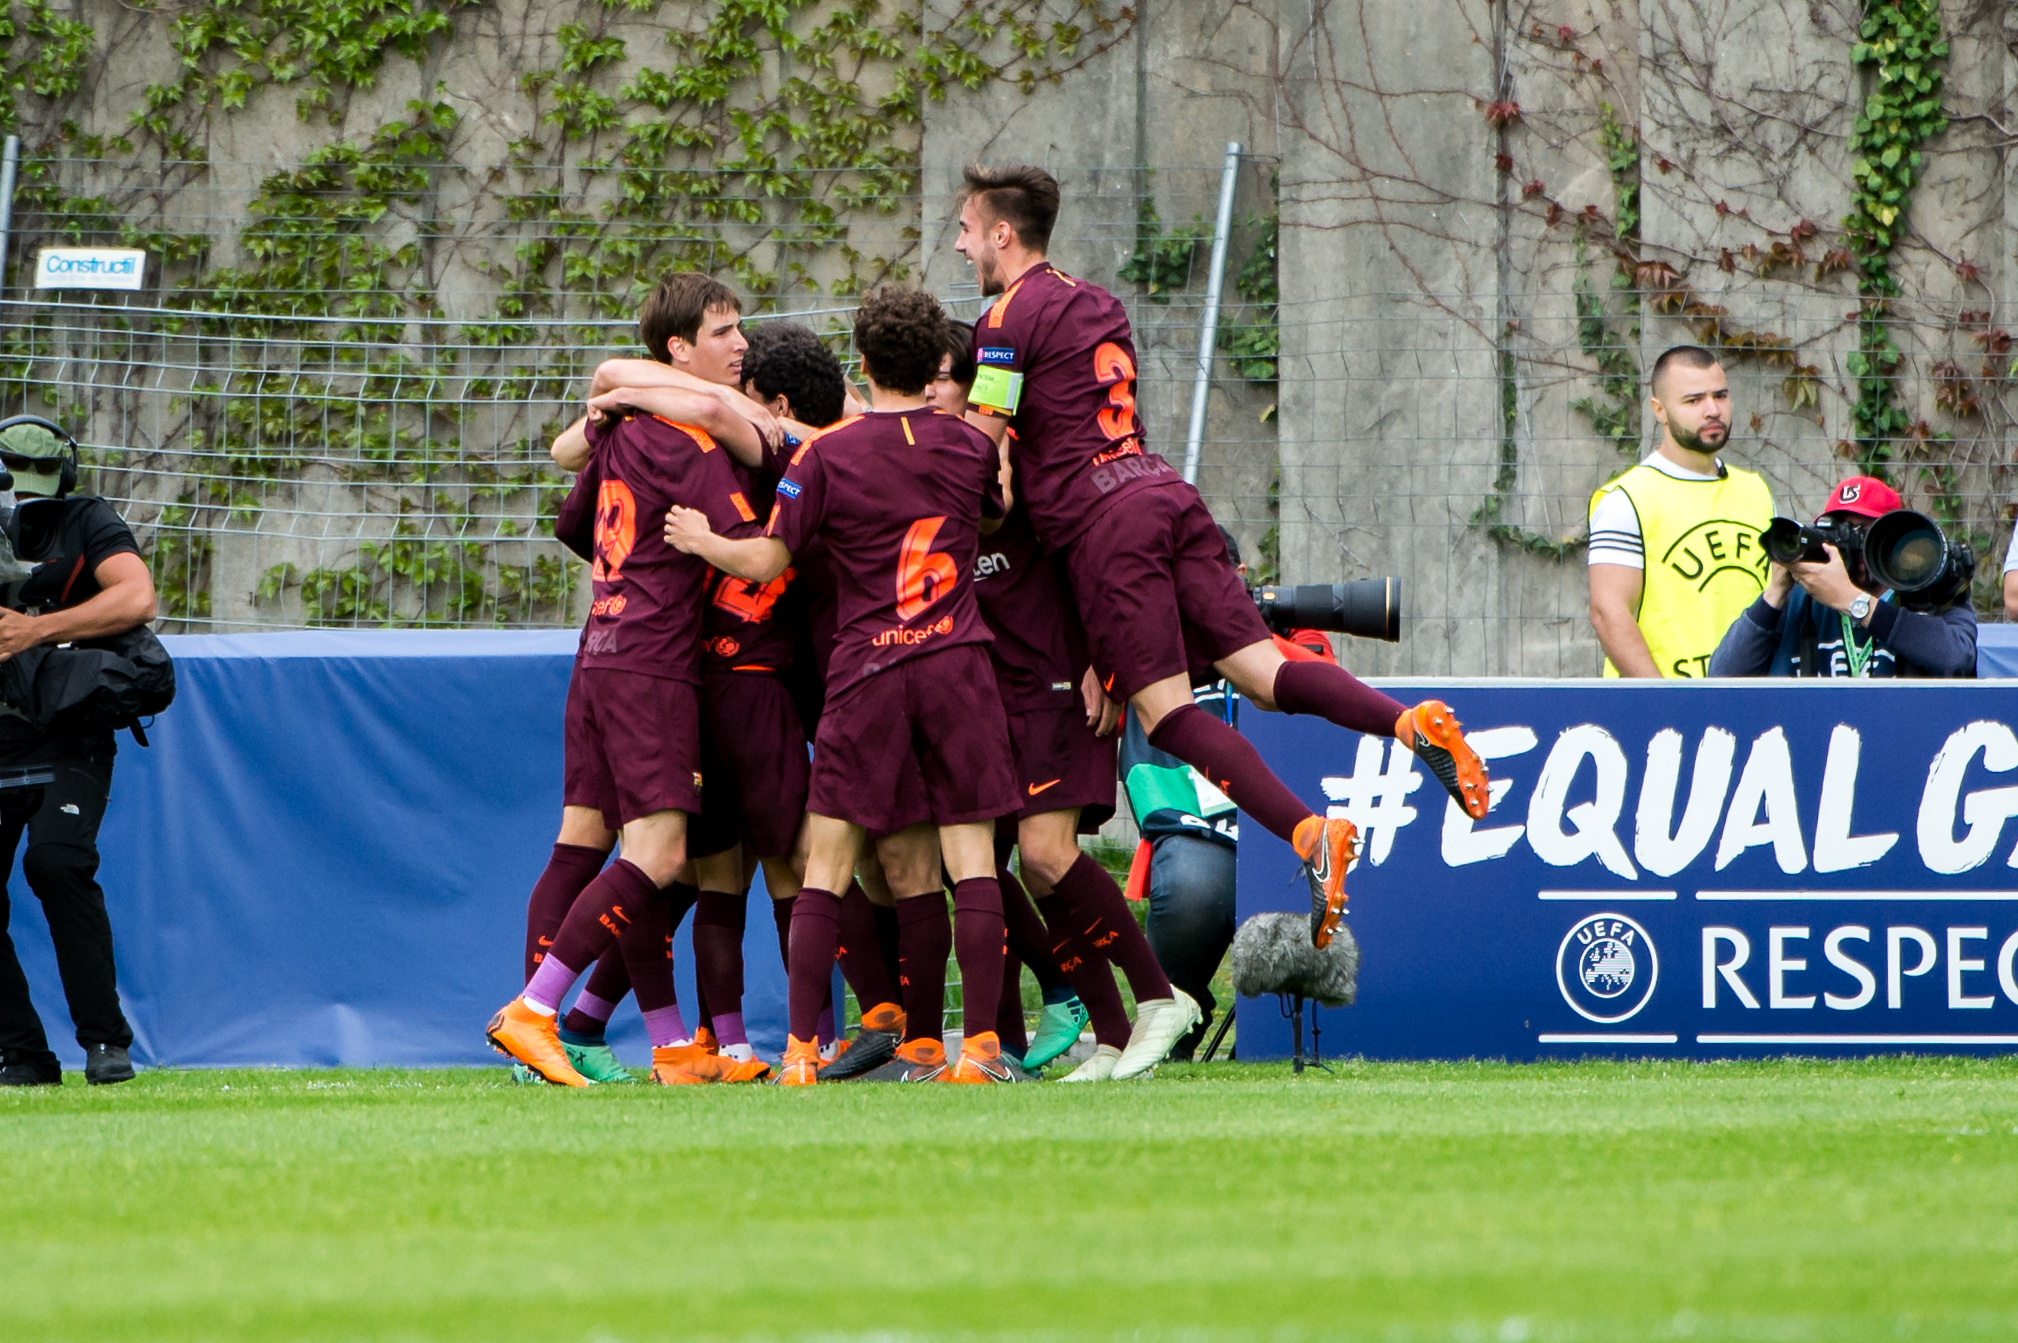 Uefa Youth League: Chelsea beaten by Barcelona in final